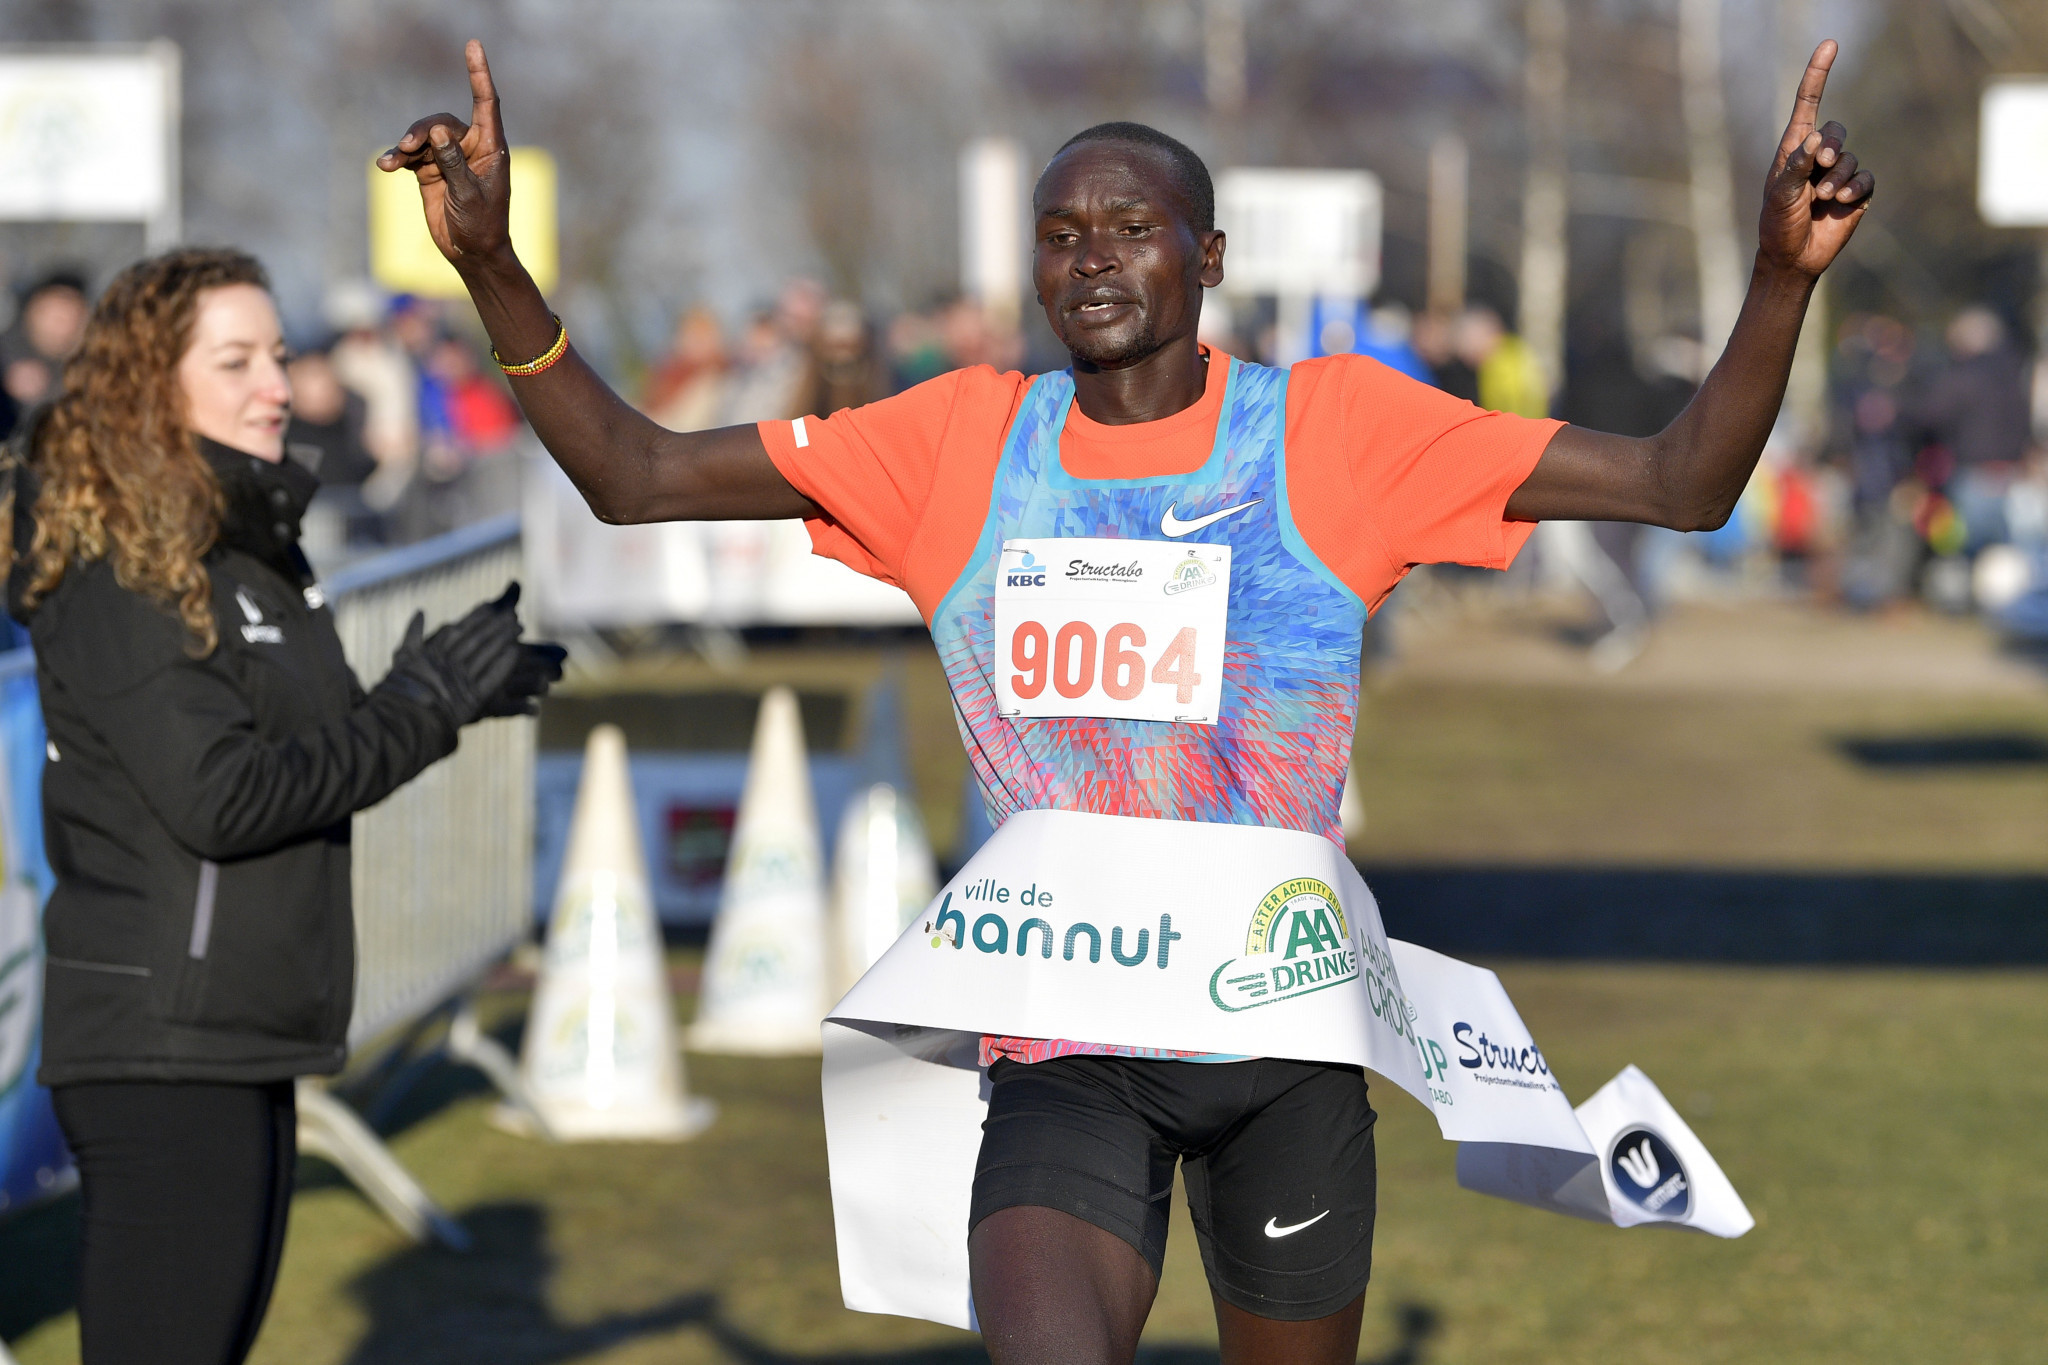 Ugandans head field for second World Athletics Cross Country Tour Gold race